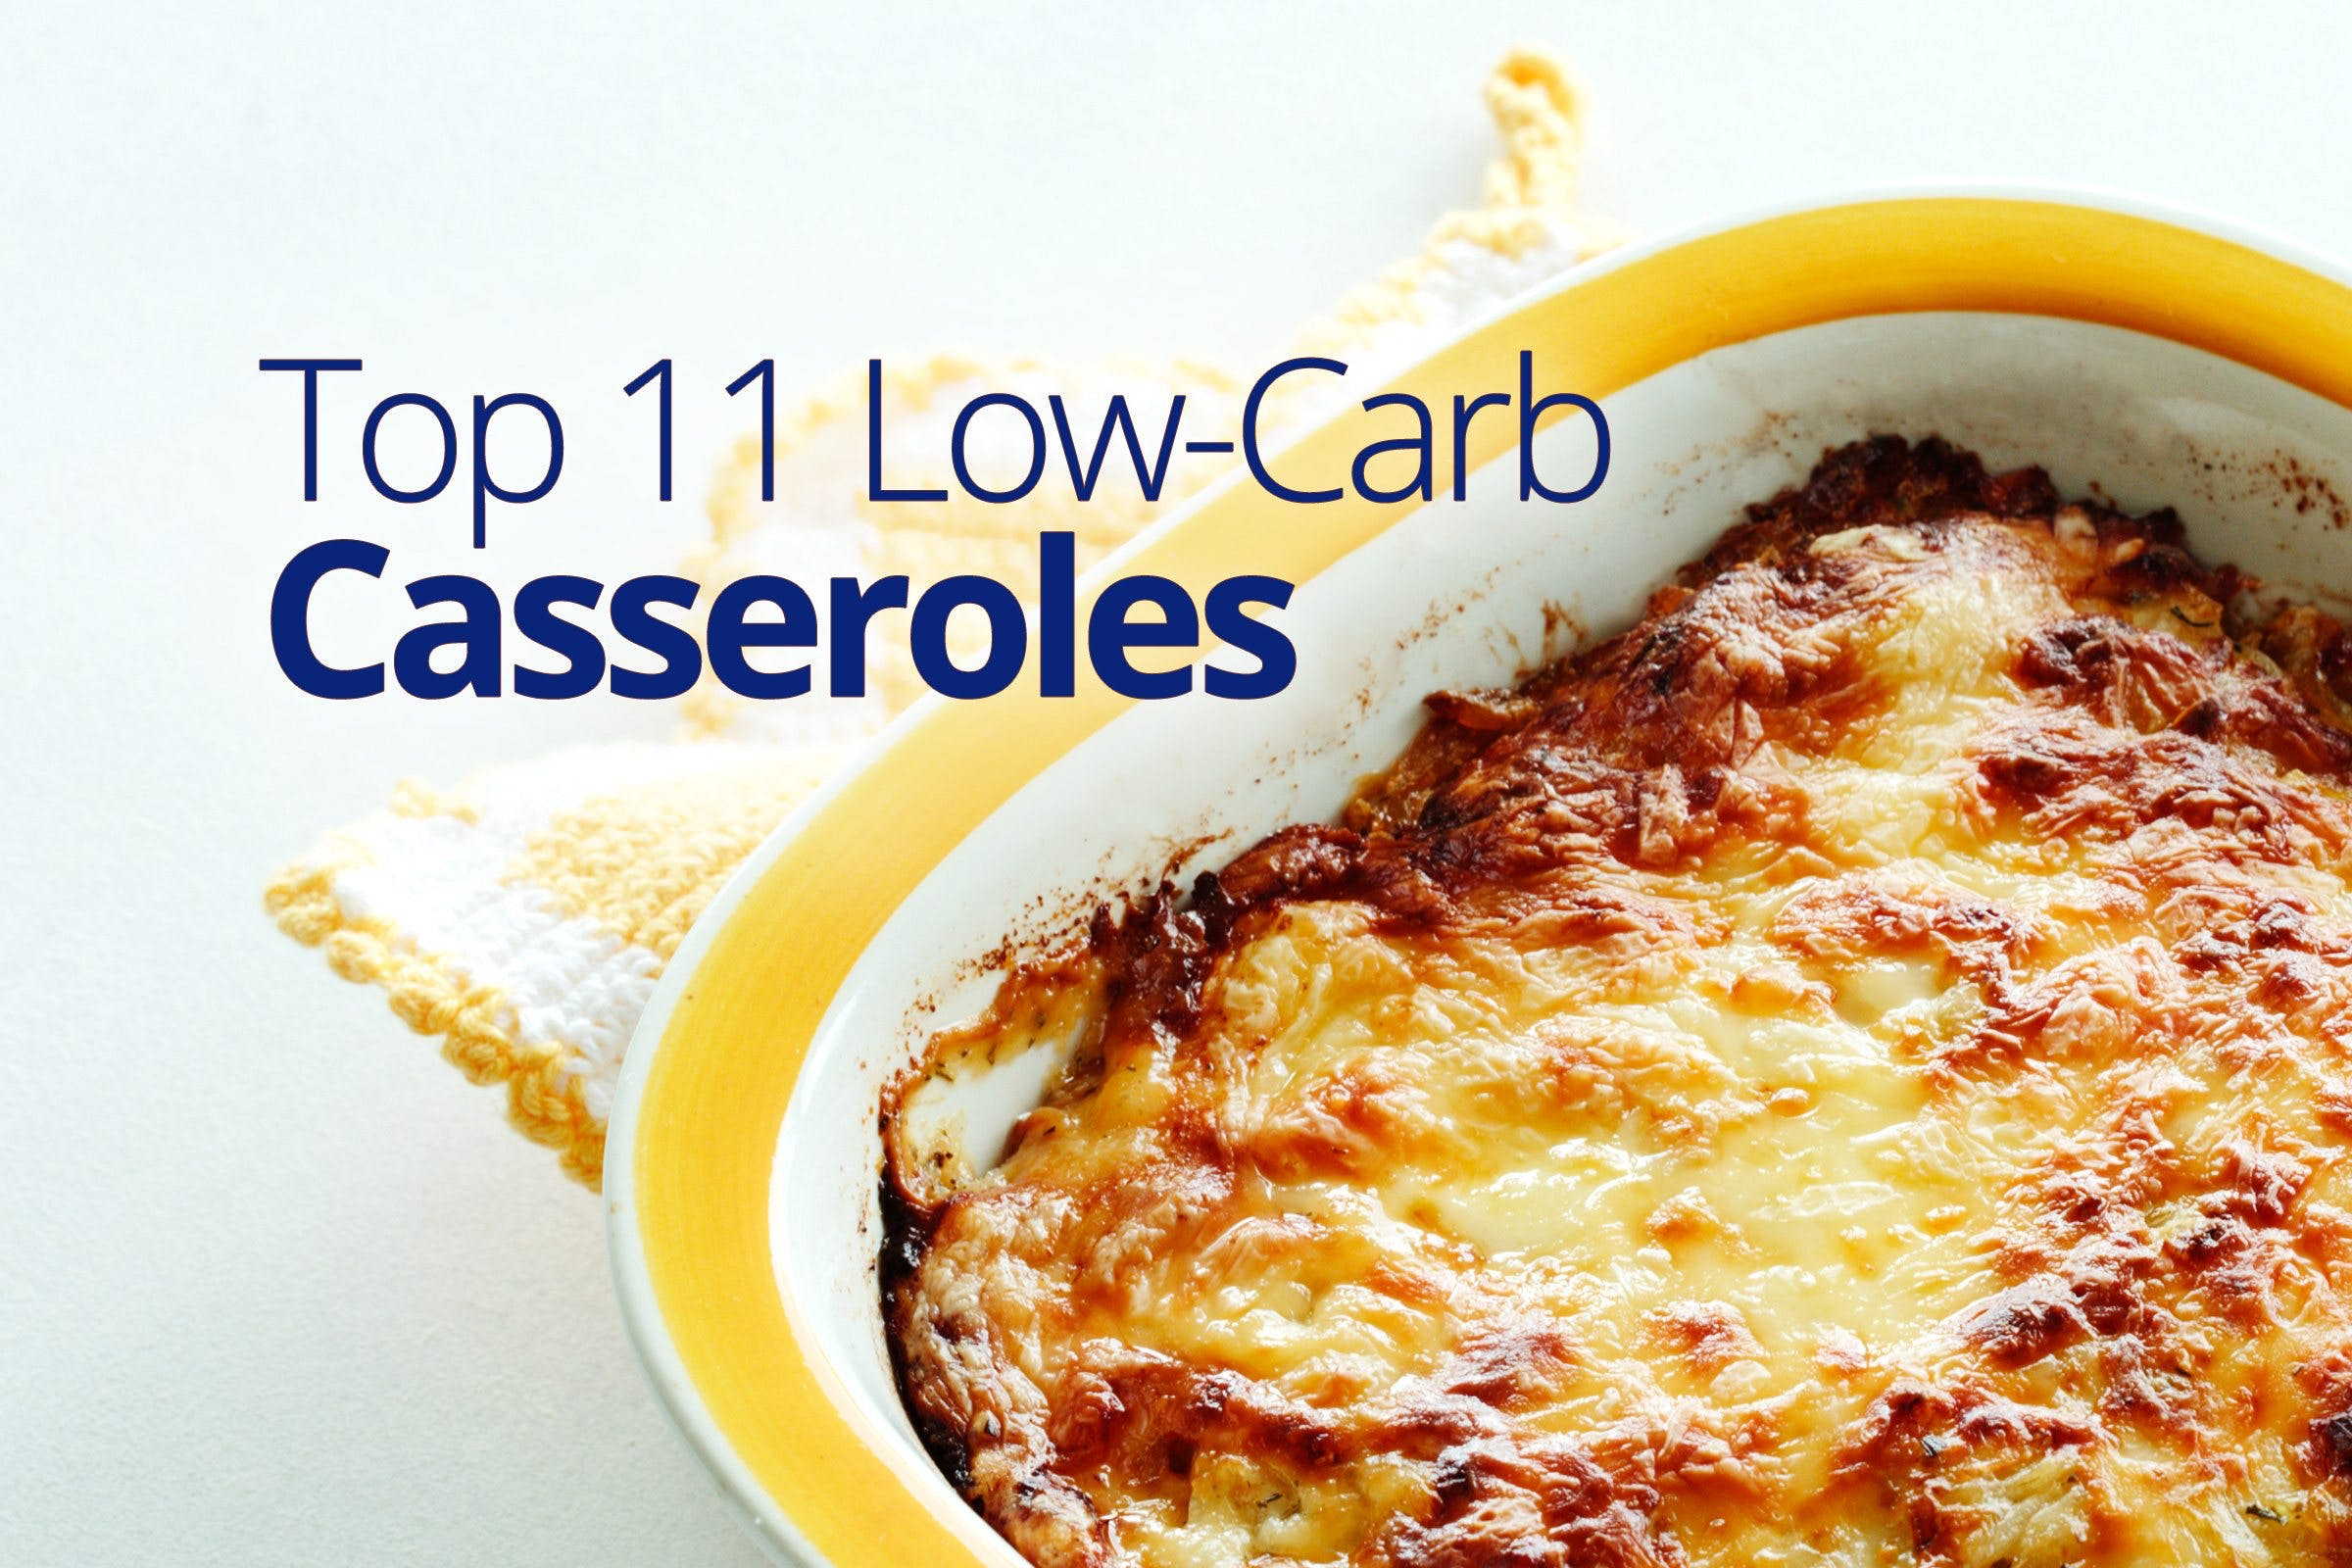 Top 30 low-carb casseroles